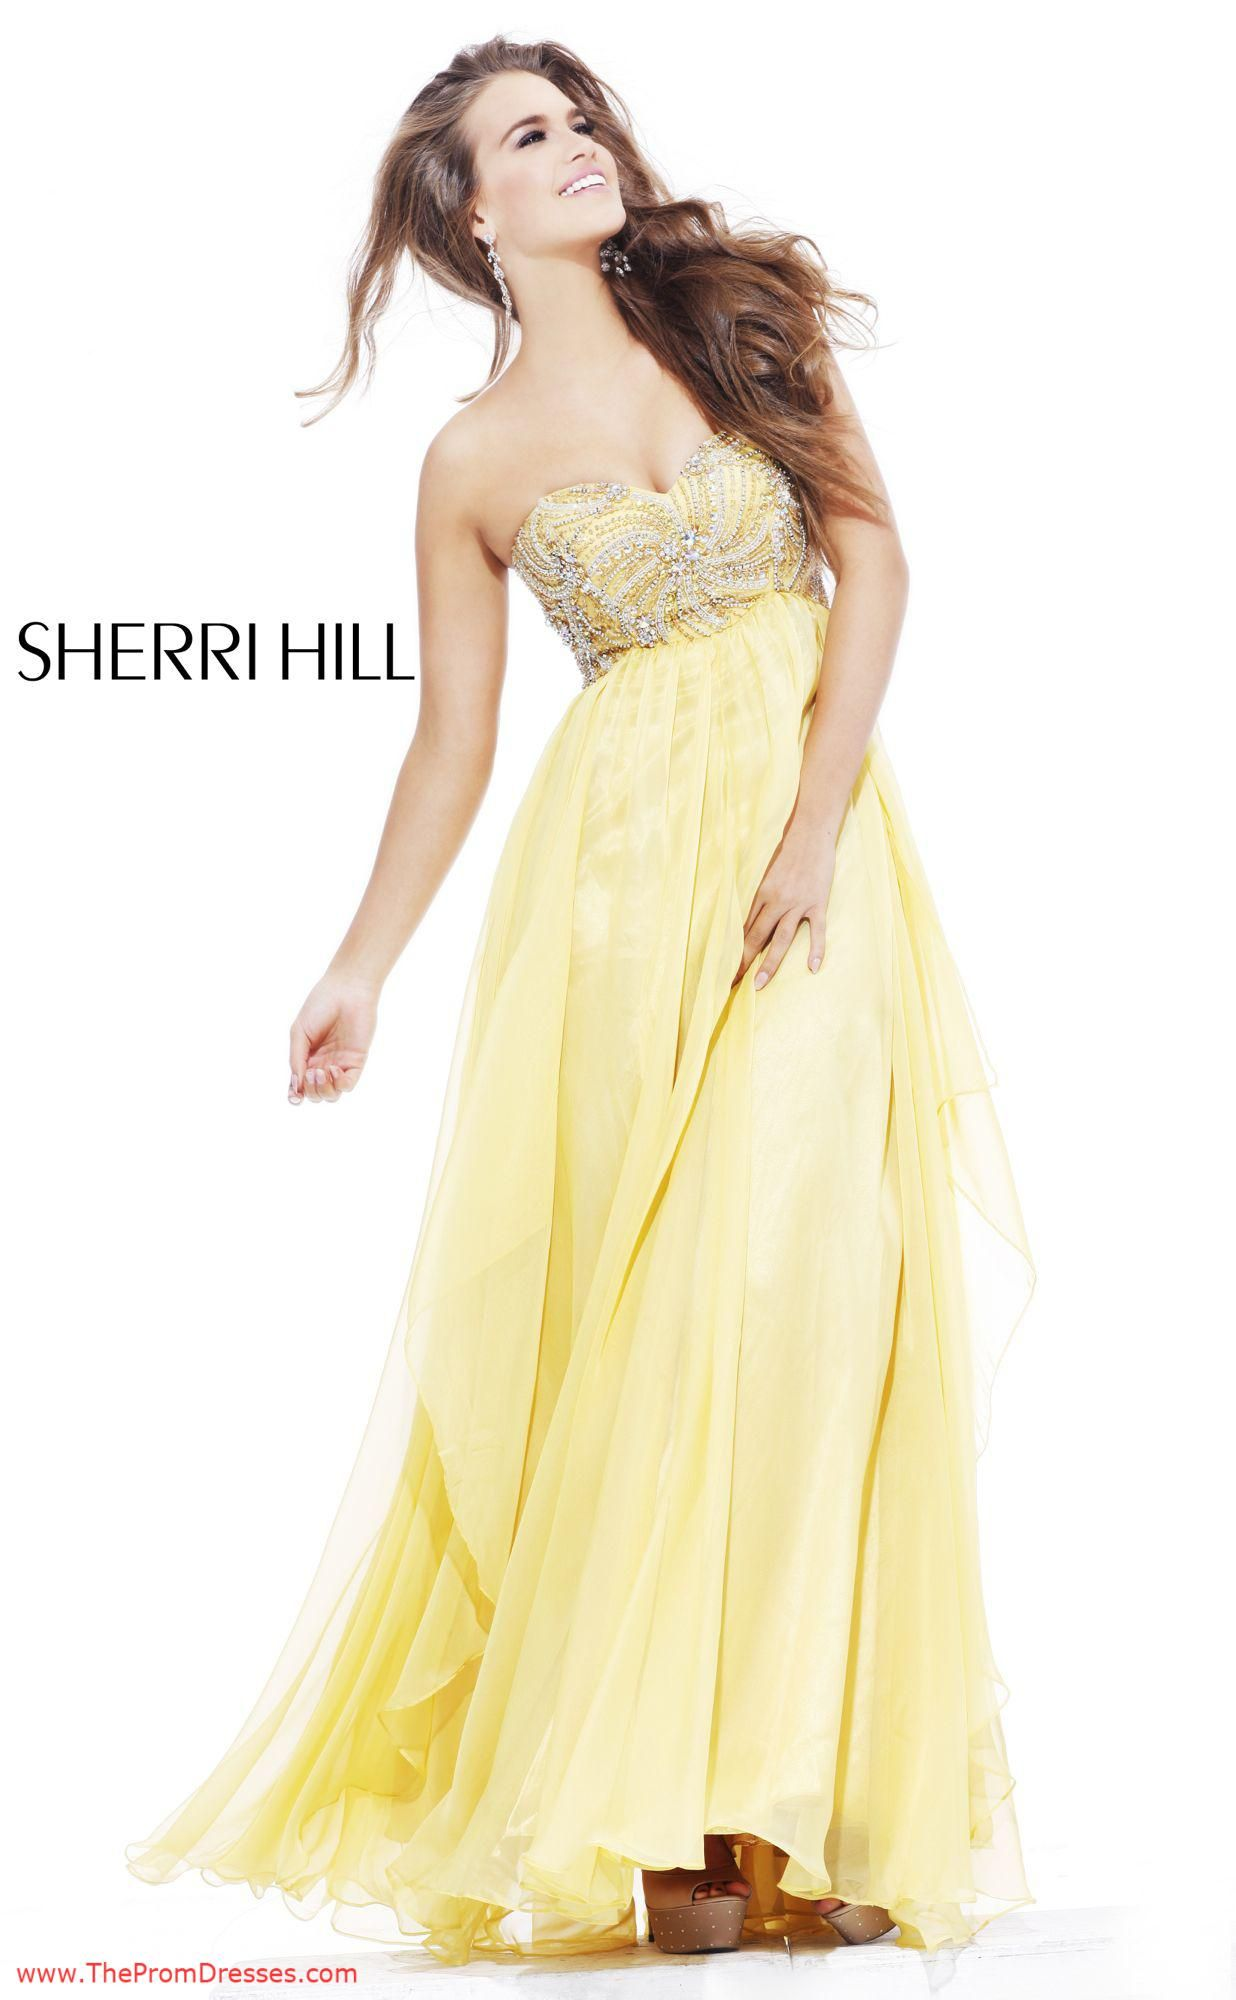 7f58a0dd6c9 Sherri Hill 3841 - Yellow Prom Dress Size 26  thepromdresses